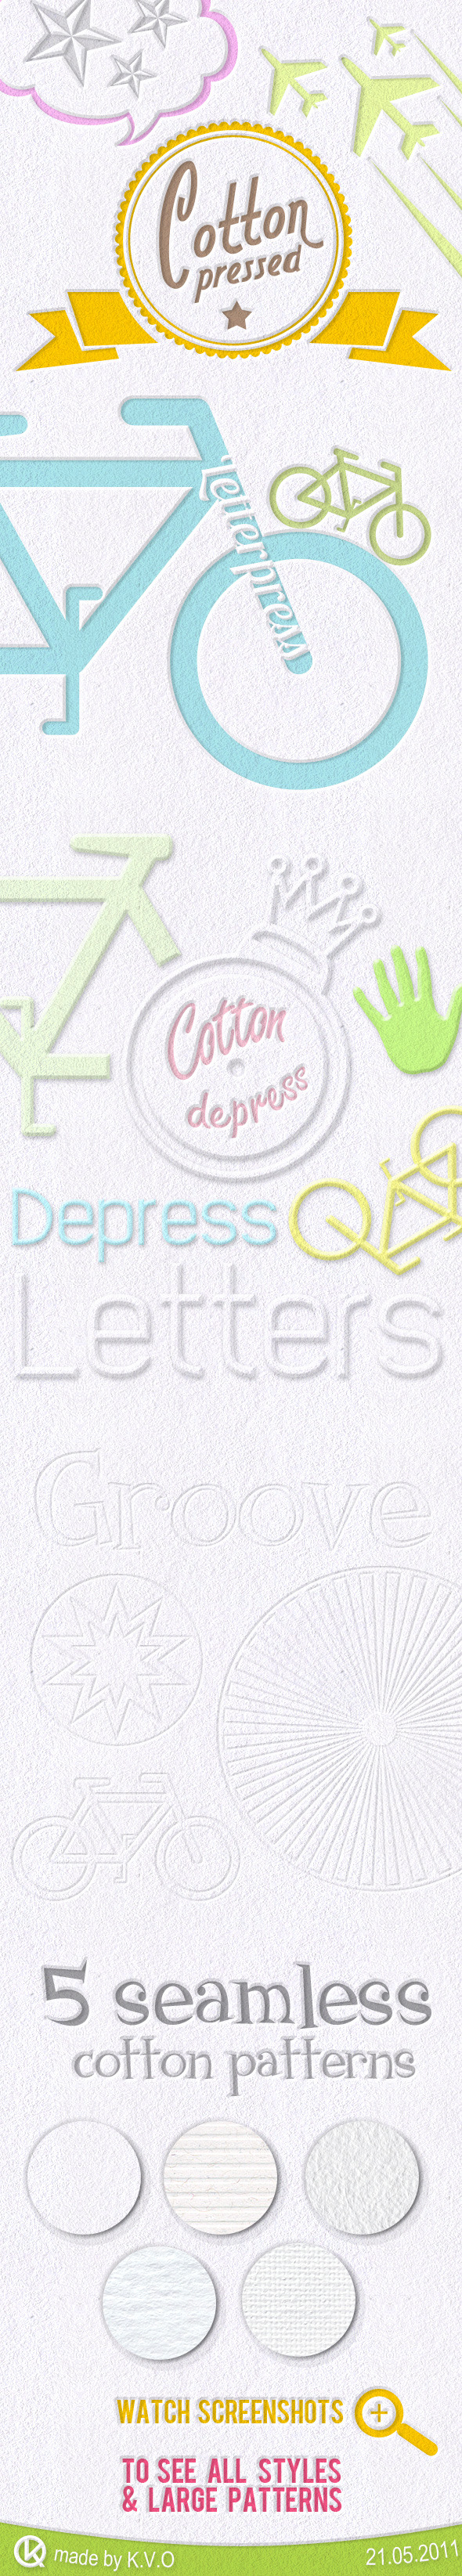 Cotton Pressed Styles - Text Effects Styles